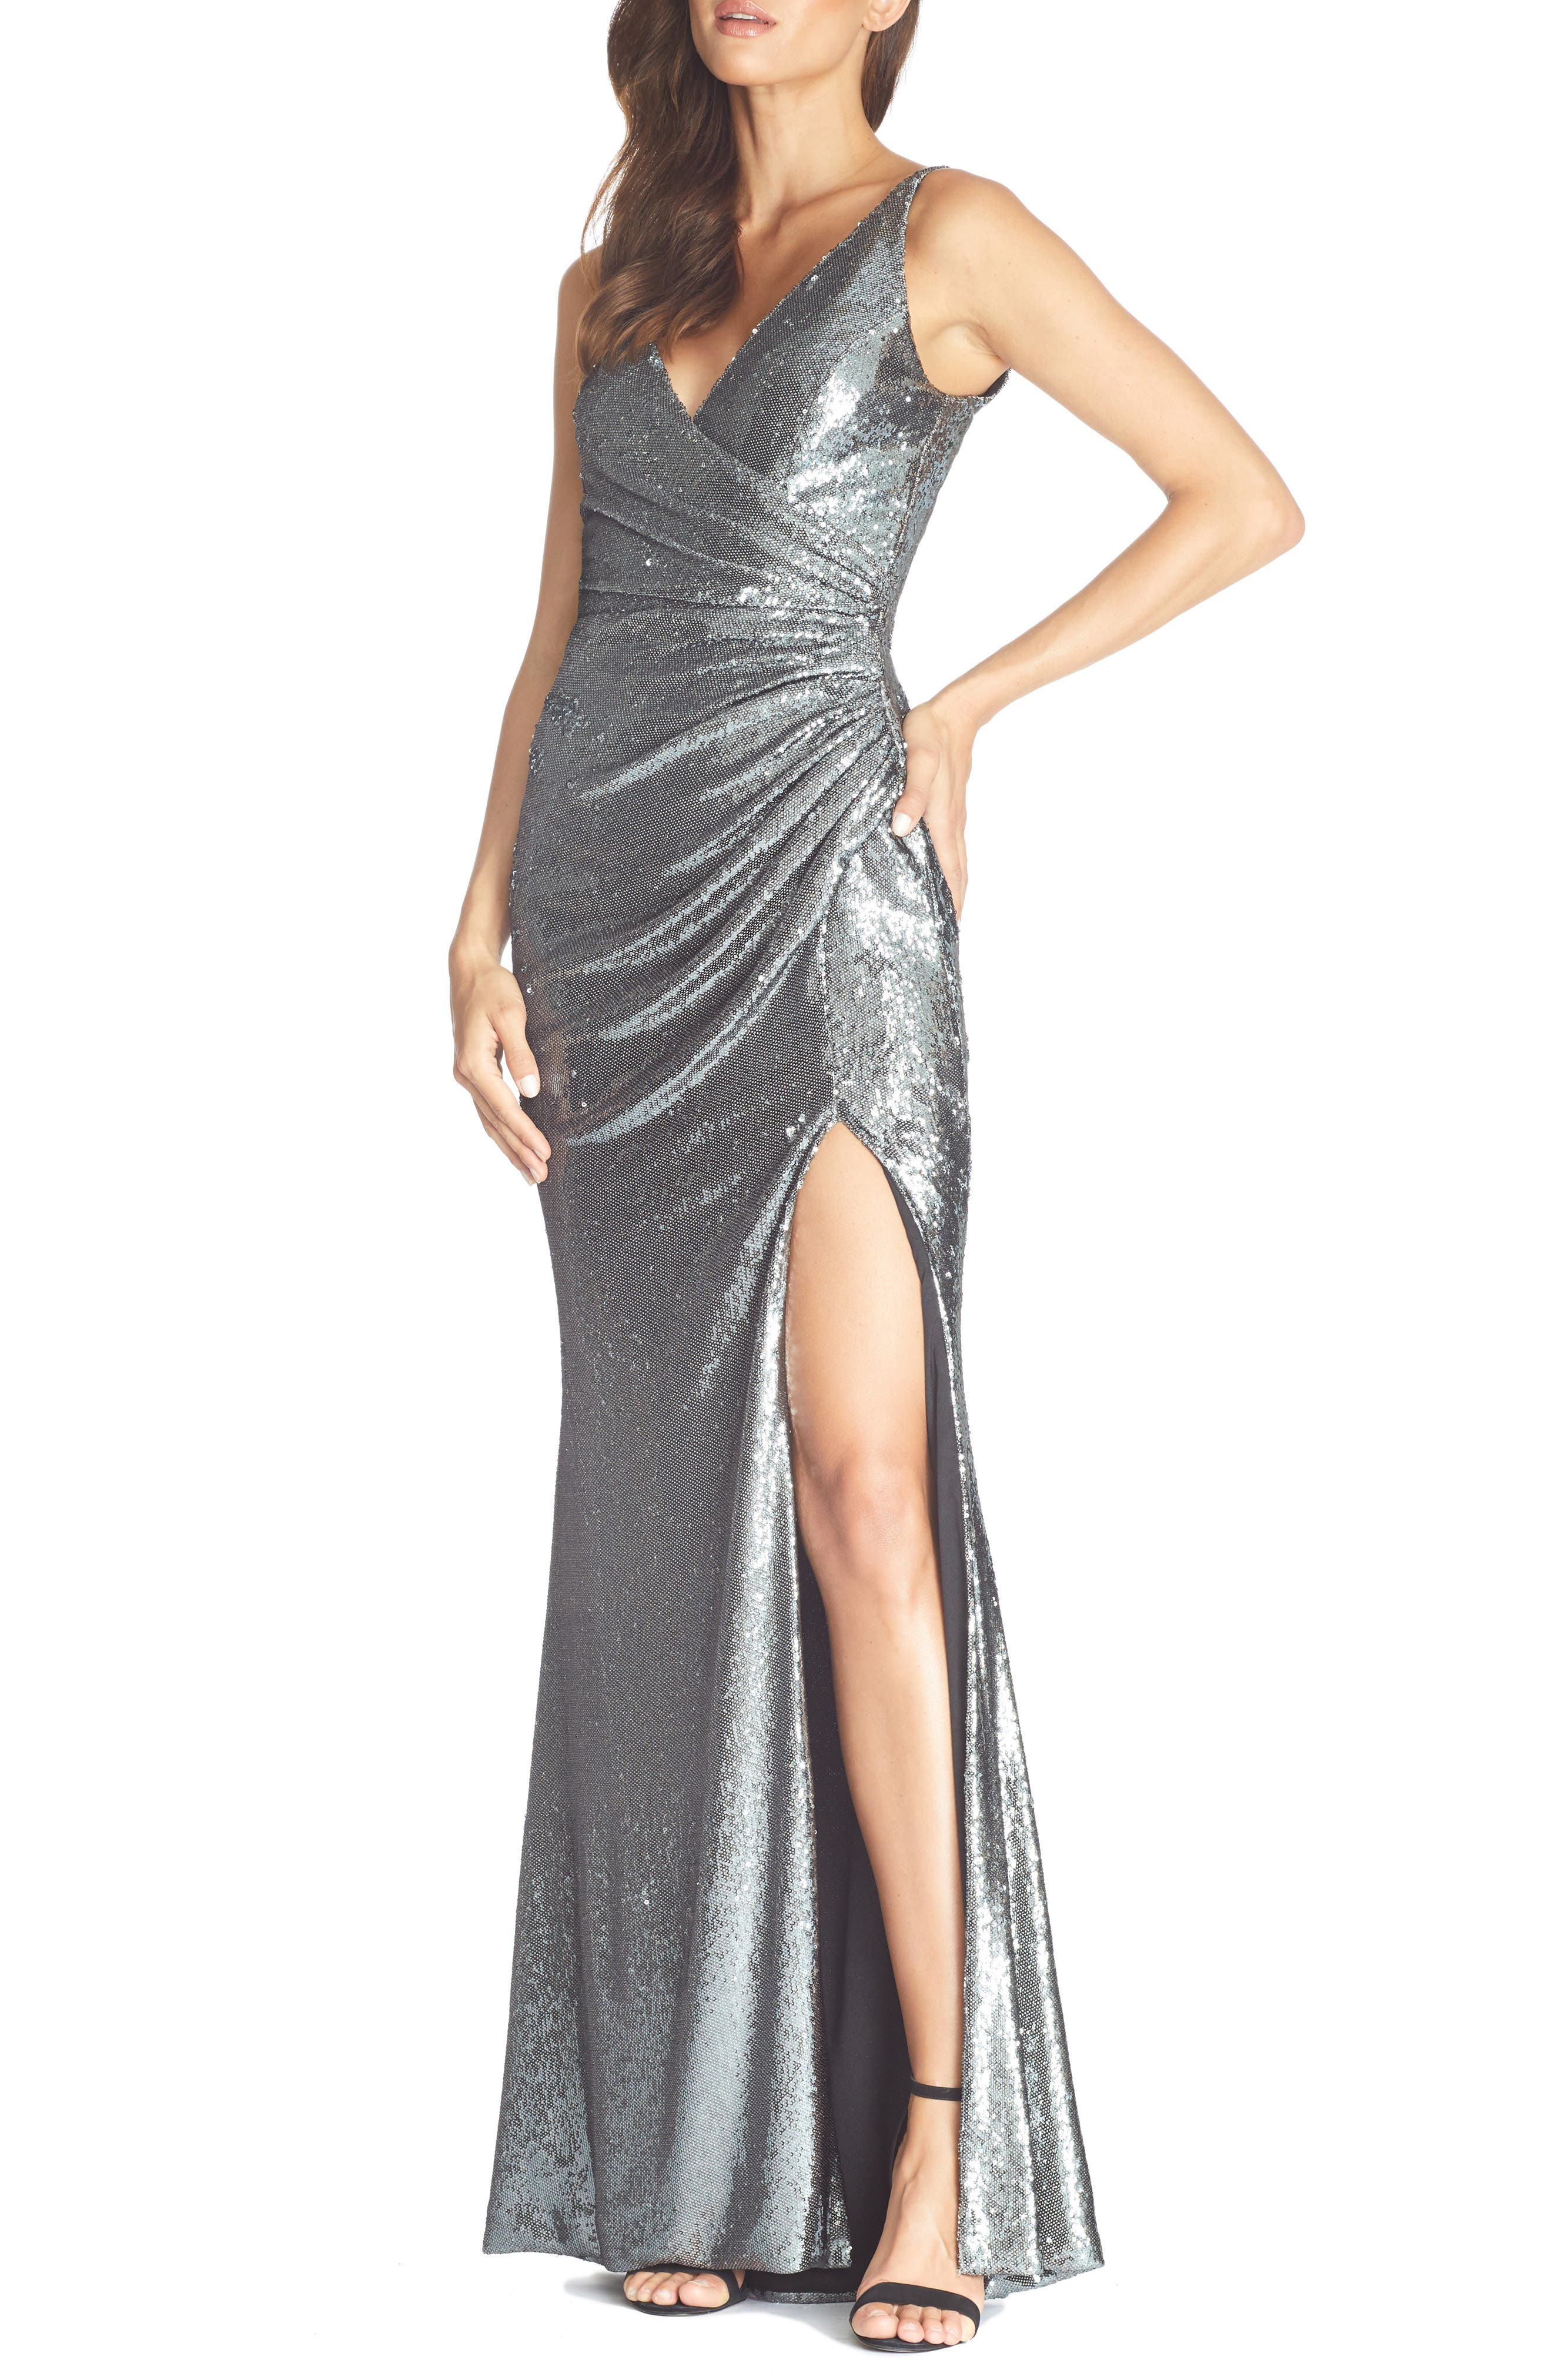 70s Prom, Formal, Evening, Party Dresses Womens Dress The Population Jordan Ruched Mermaid Gown Size XX-Large - Grey $348.00 AT vintagedancer.com